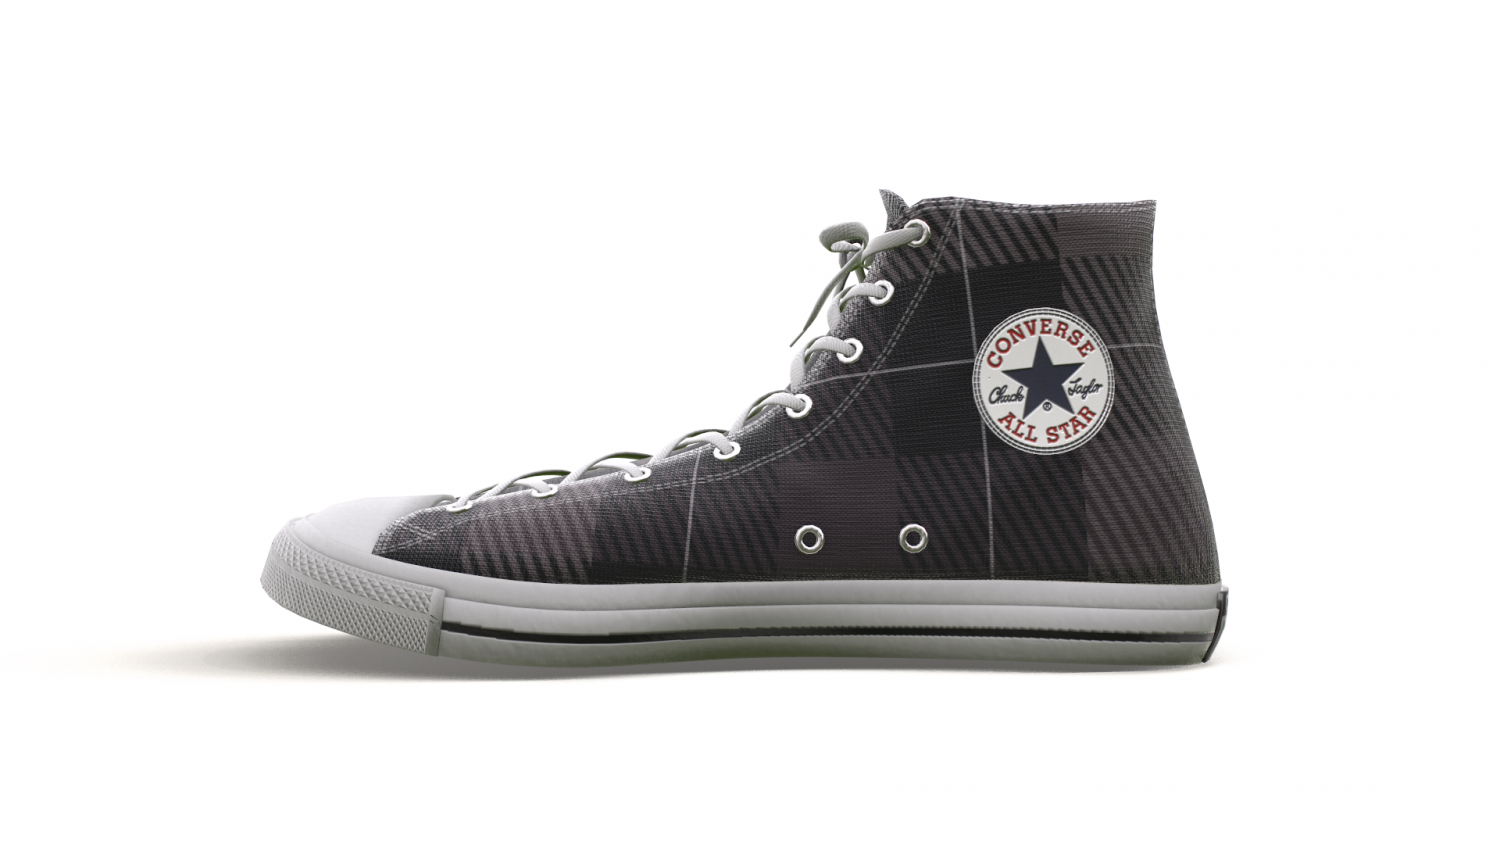 Classic High Top Converse All Stars.